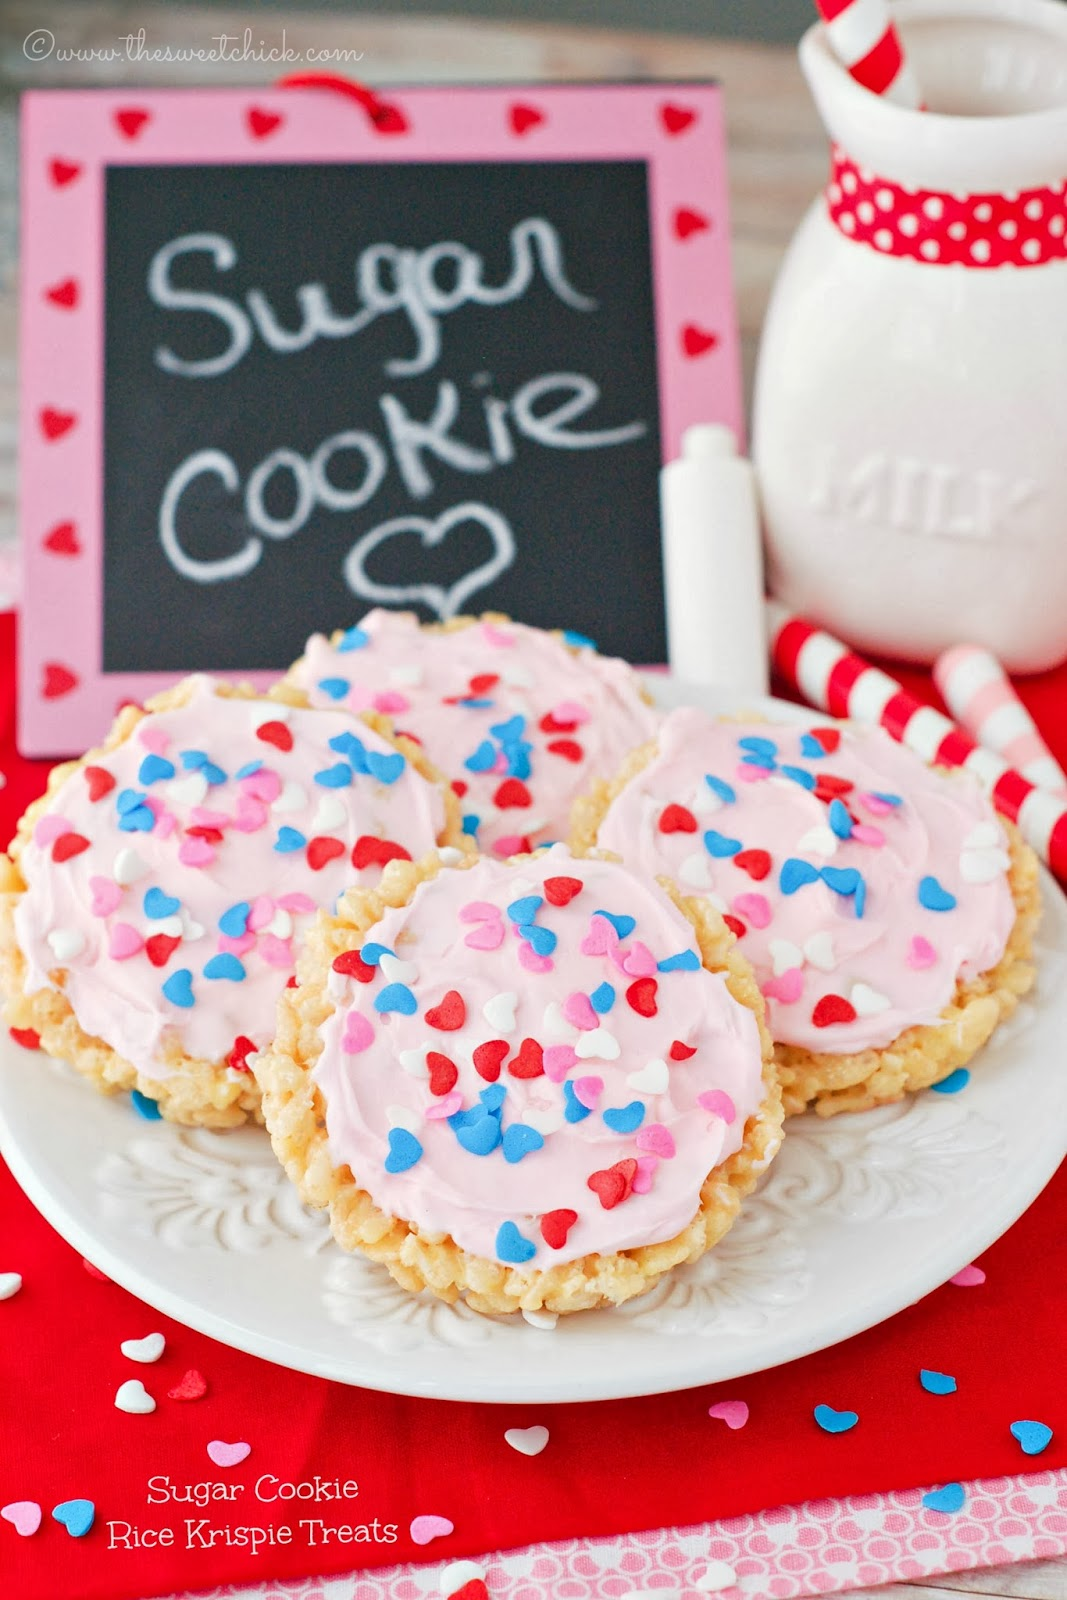 Sugar Cookie Rice Krispie Treats by The Sweet Chick